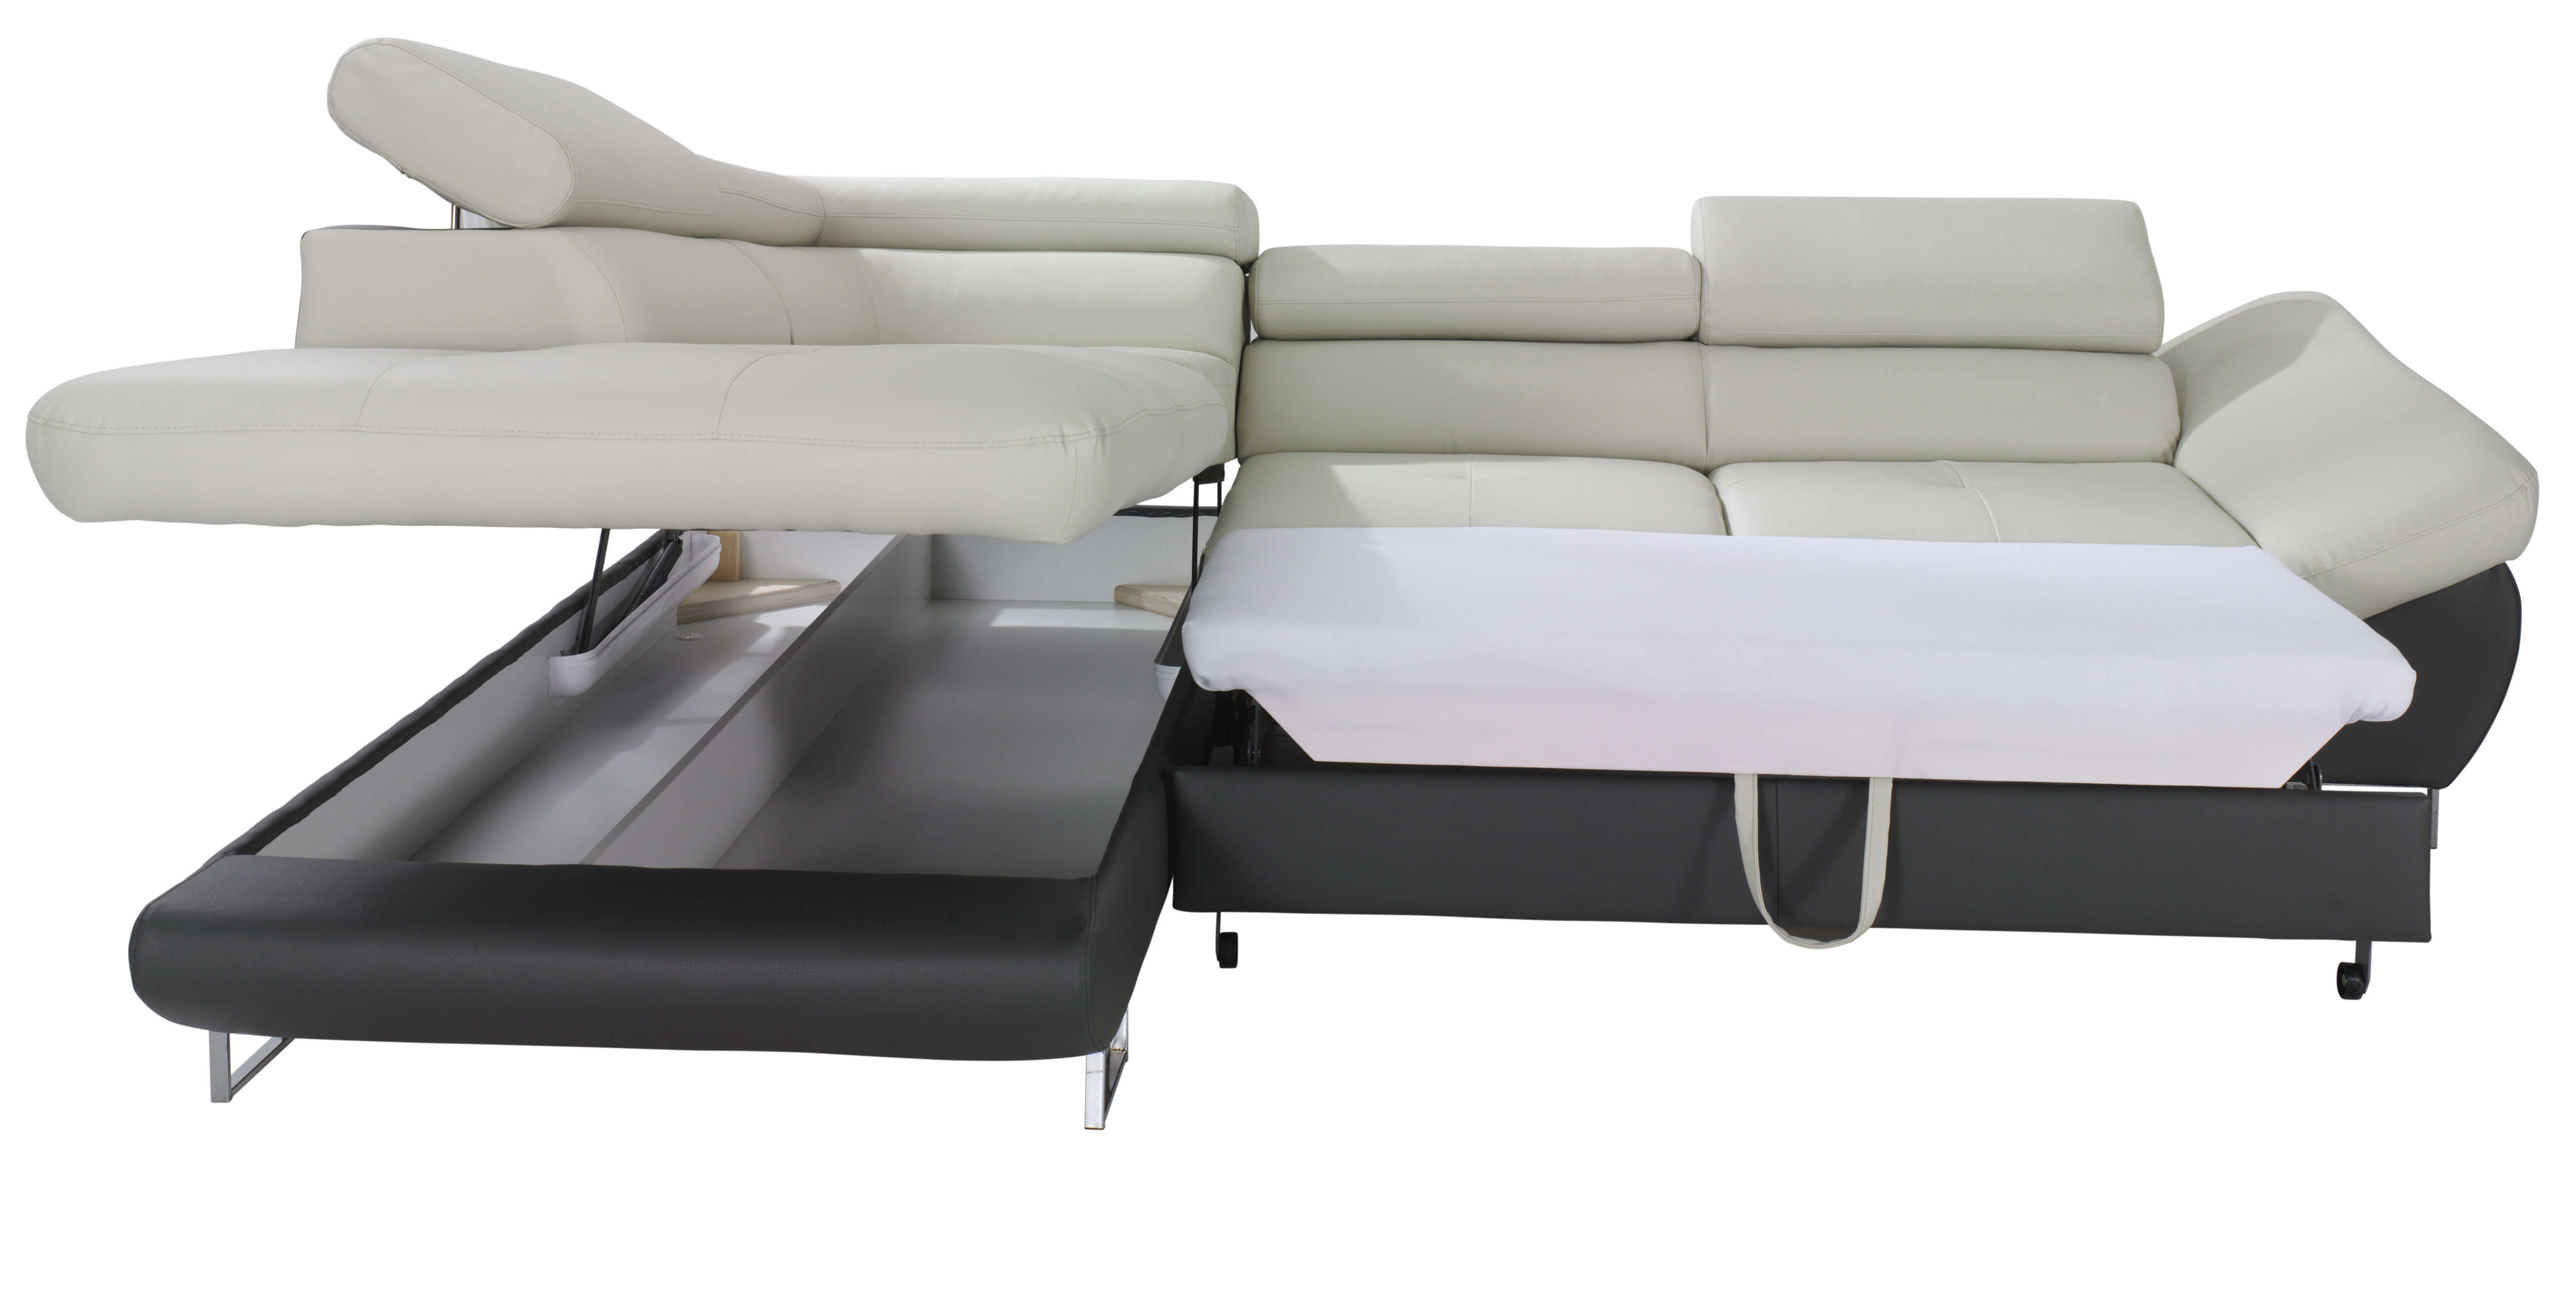 fabio sectional sofa sleeper with storage | creative furniture BCVTUWA